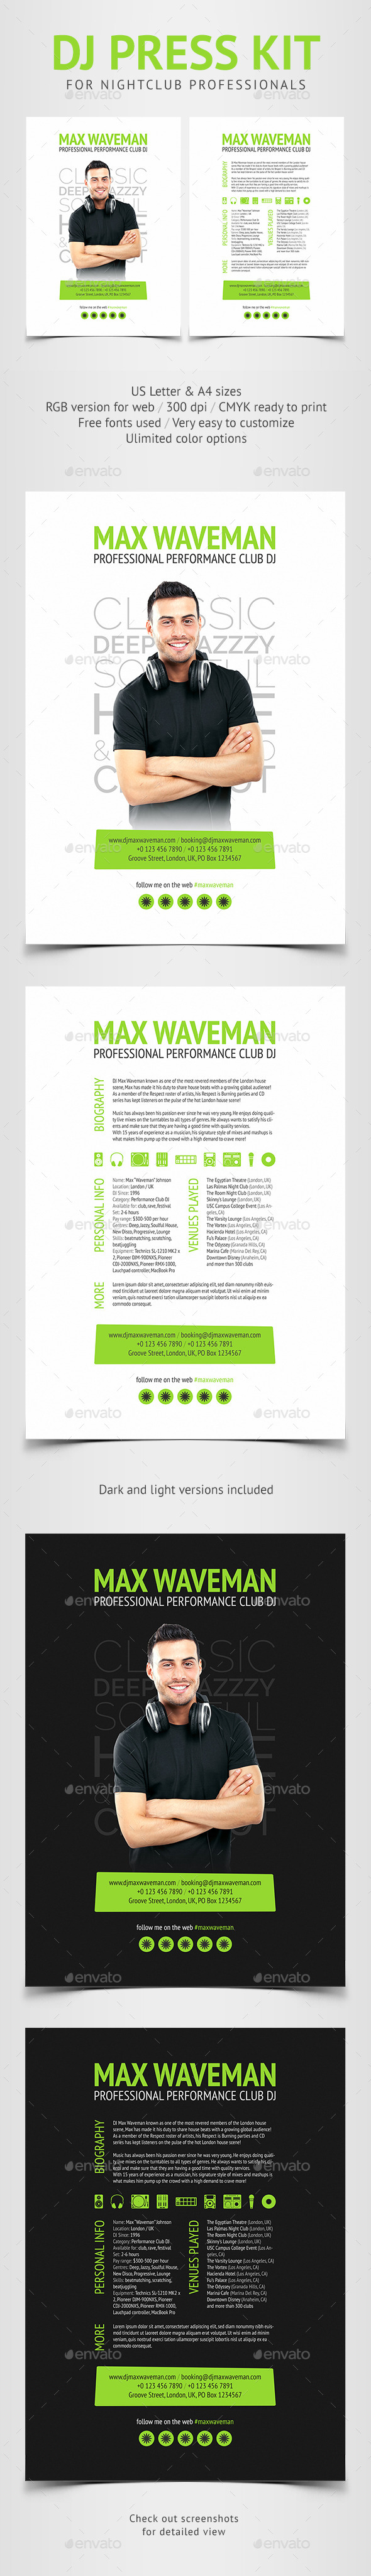 Groove - DJ Press Kit / Resume PSD Template - Resumes Stationery